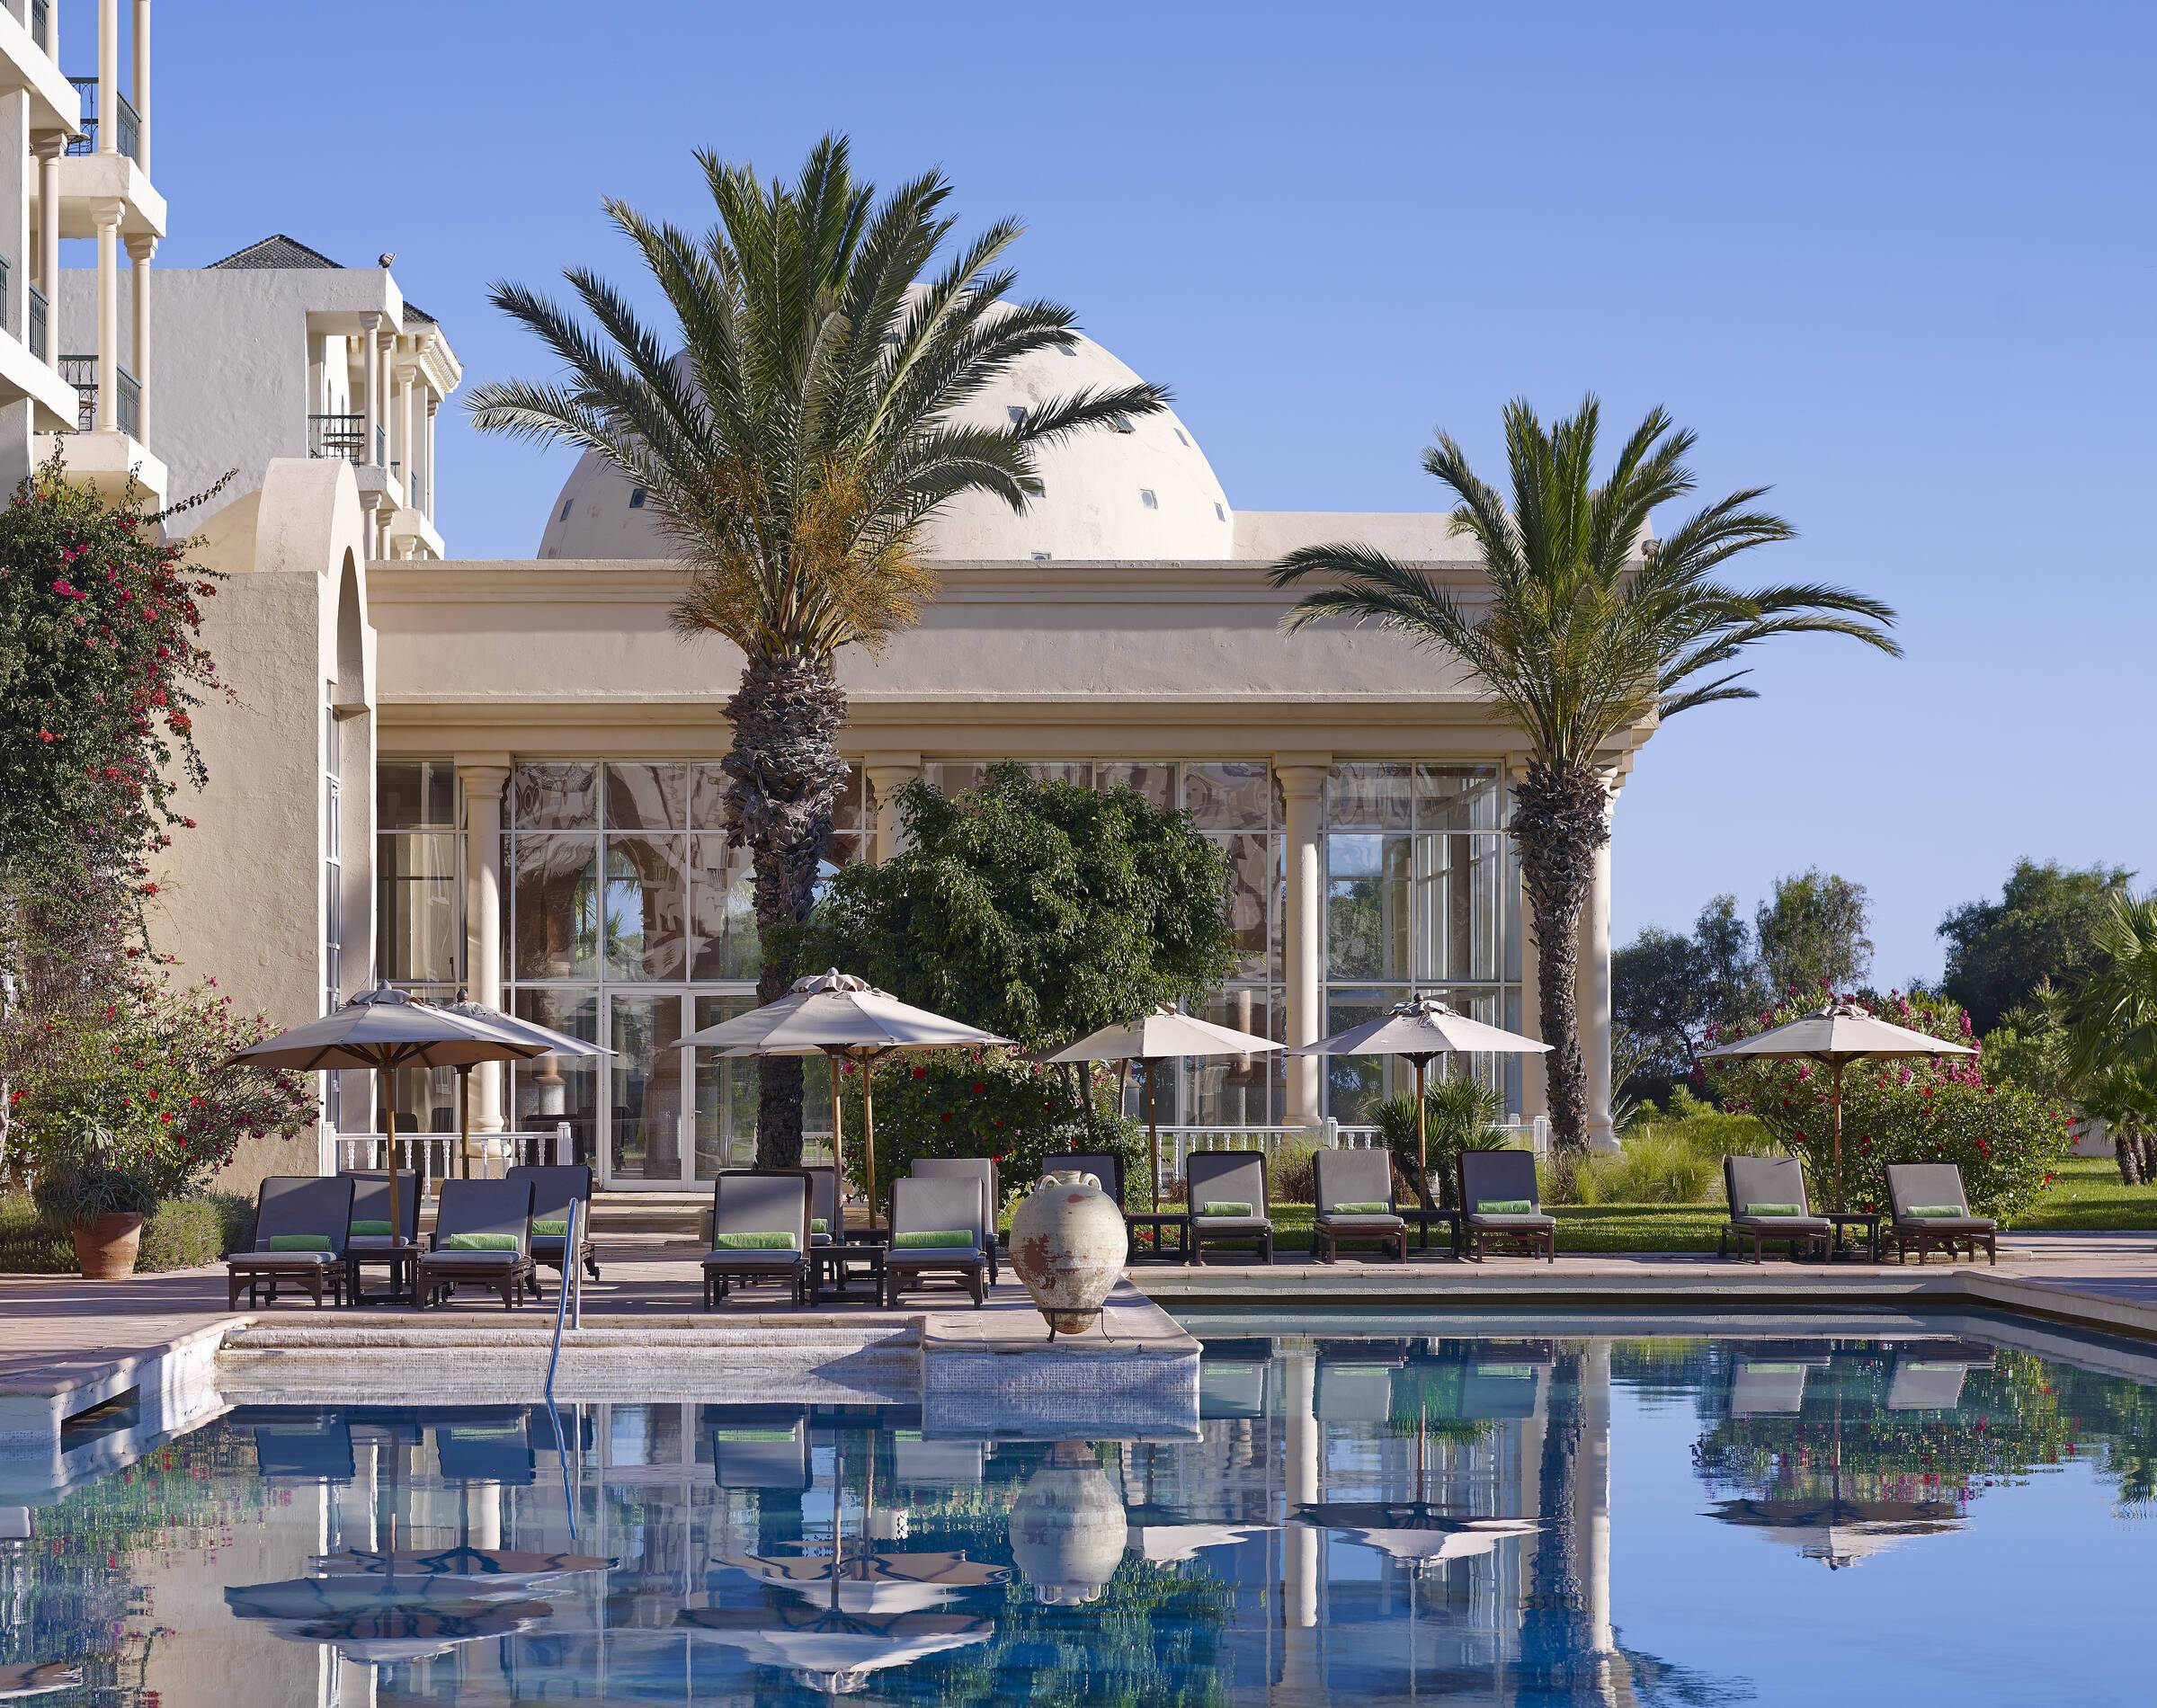 The Residence Piscine Tunis